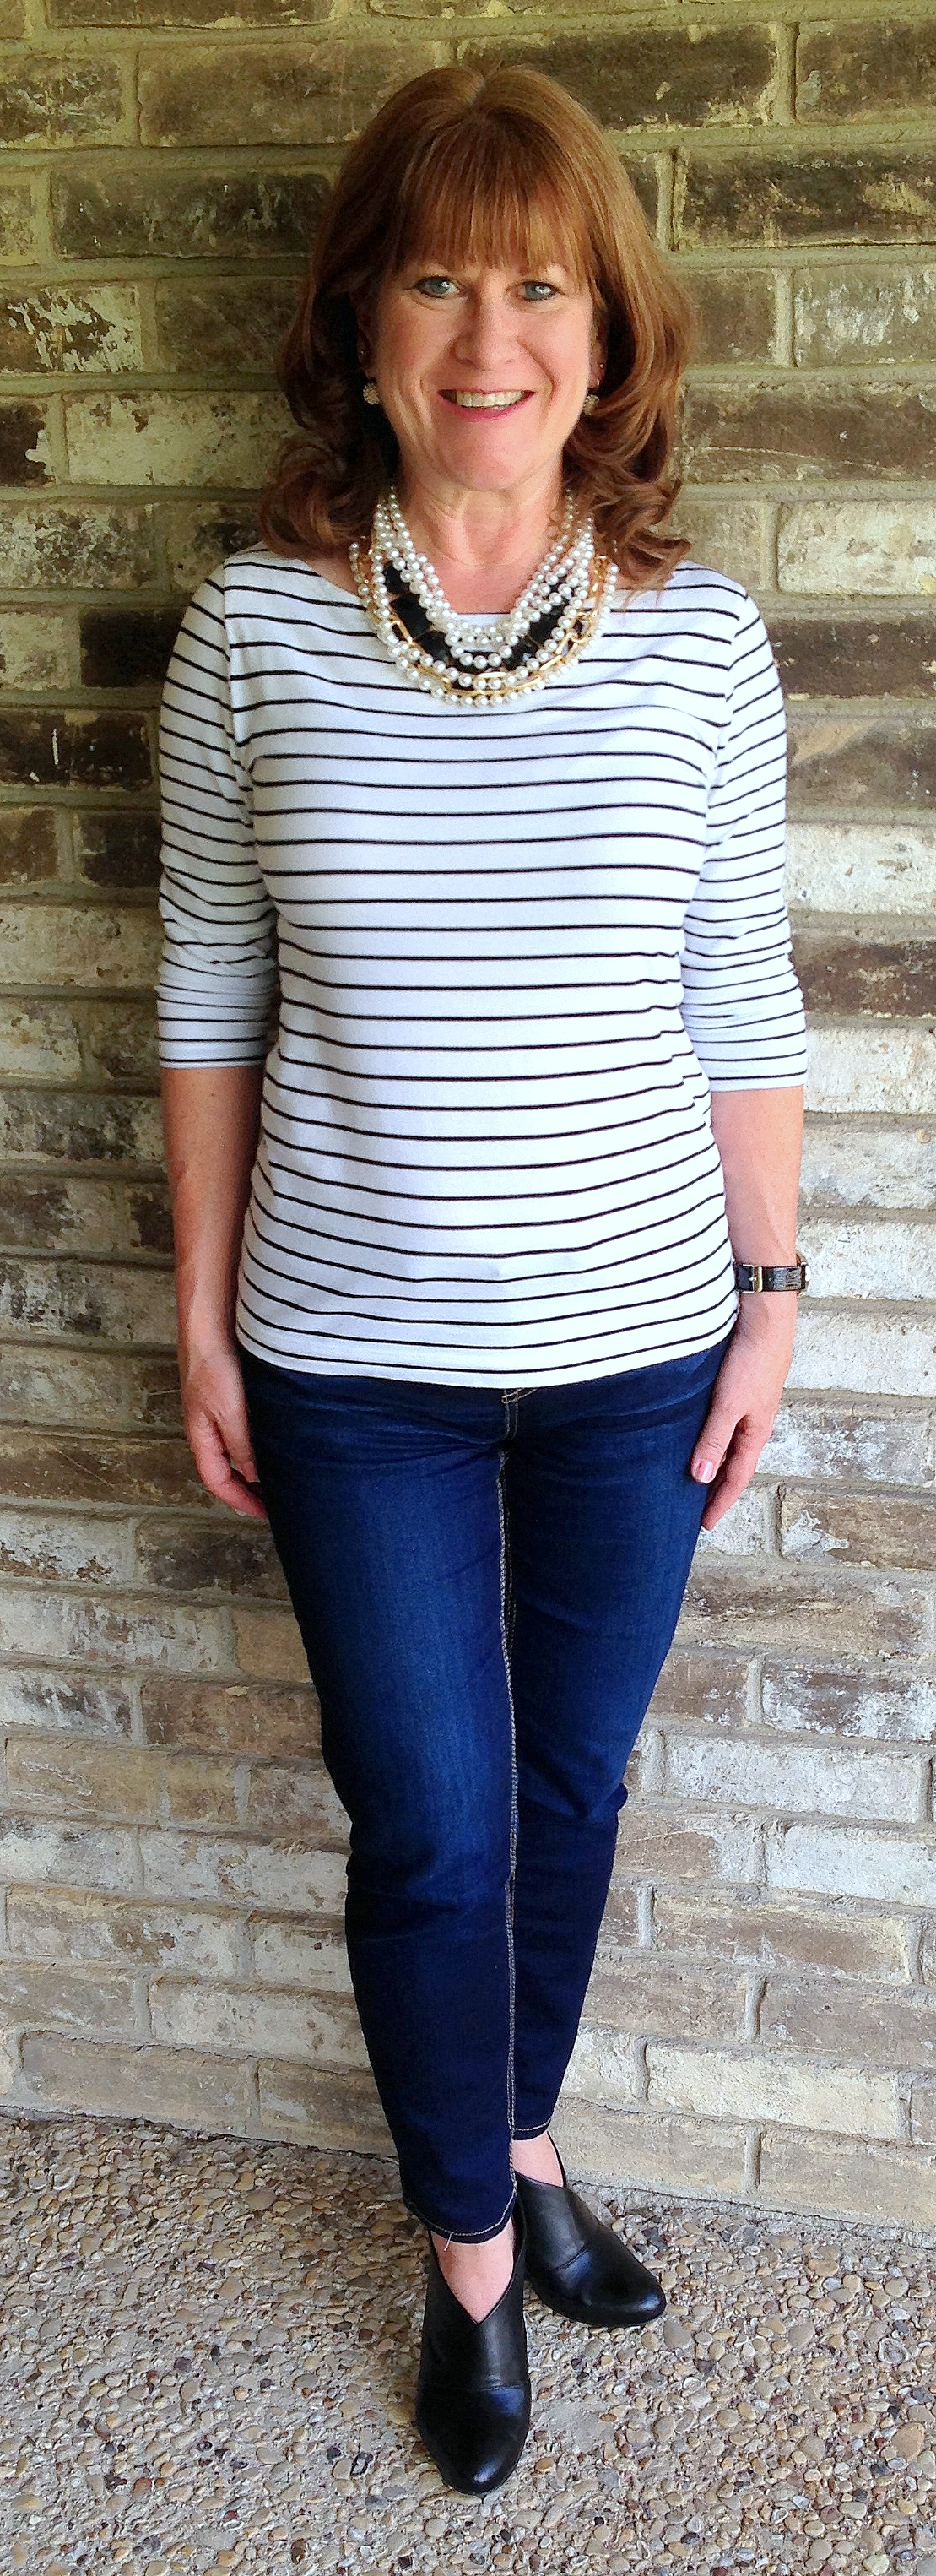 Casual Outfit Ideas Women Over 50